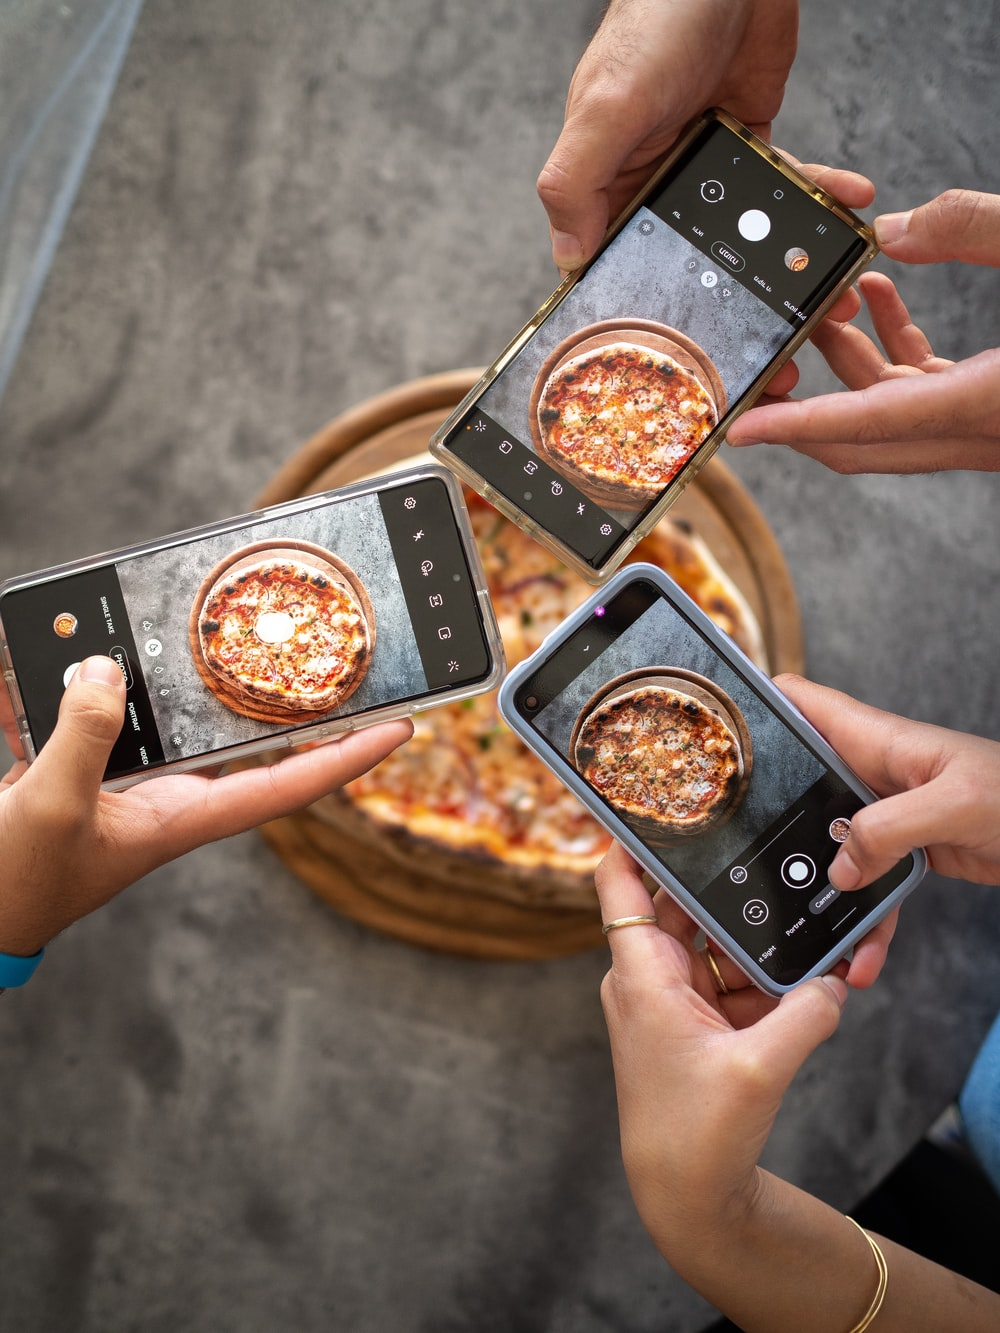 person holding black smartphone taking photo of pizza